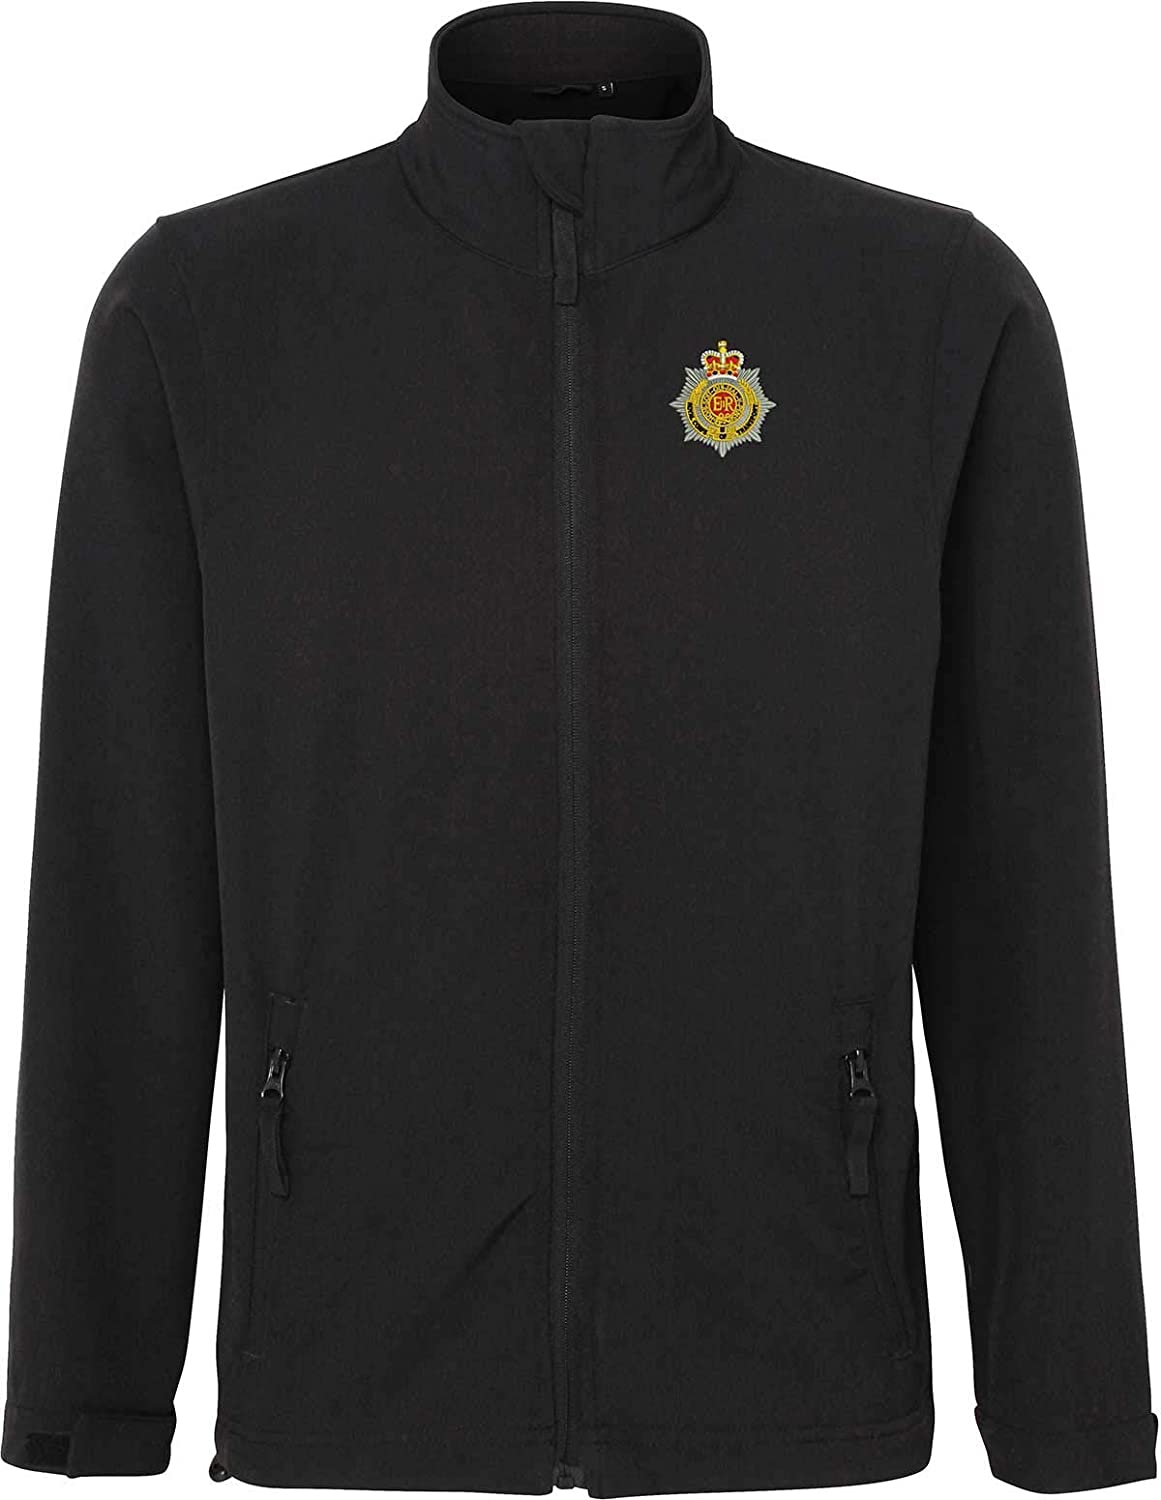 Embroidered Softshell Jacket Military Online Royal Corps of Transport RCT Army